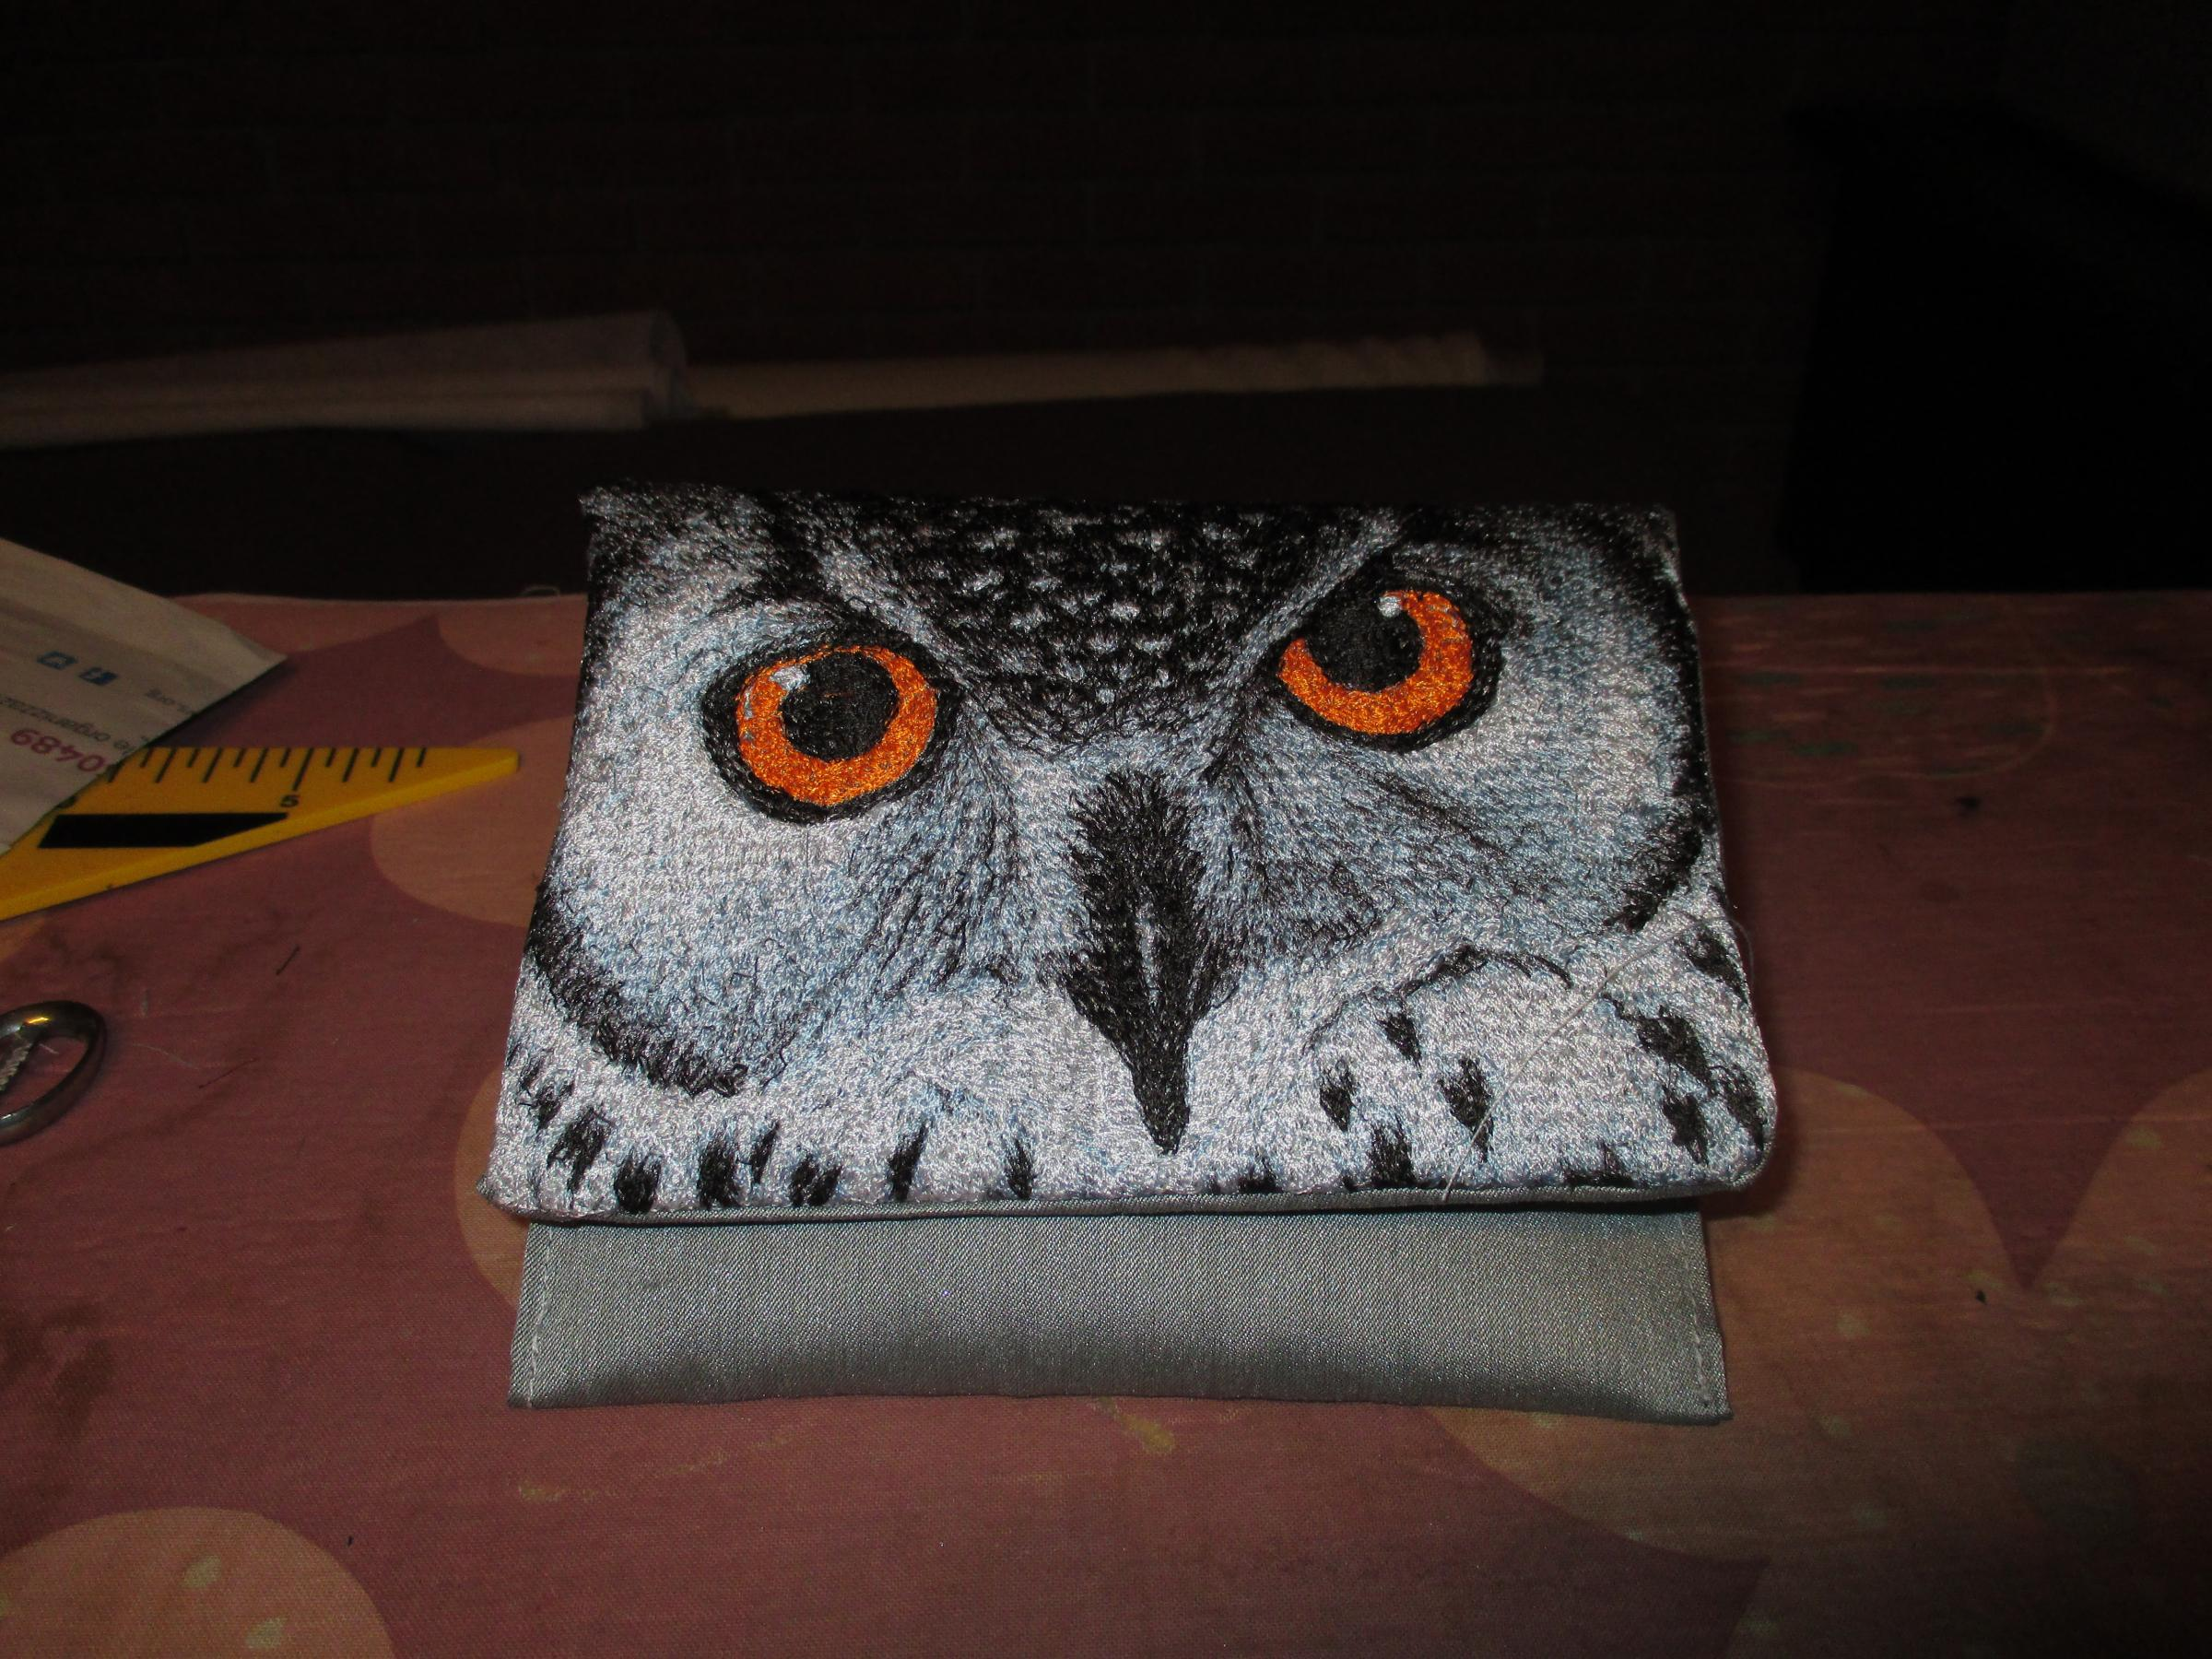 Embroidered little bag with Owl portrait design